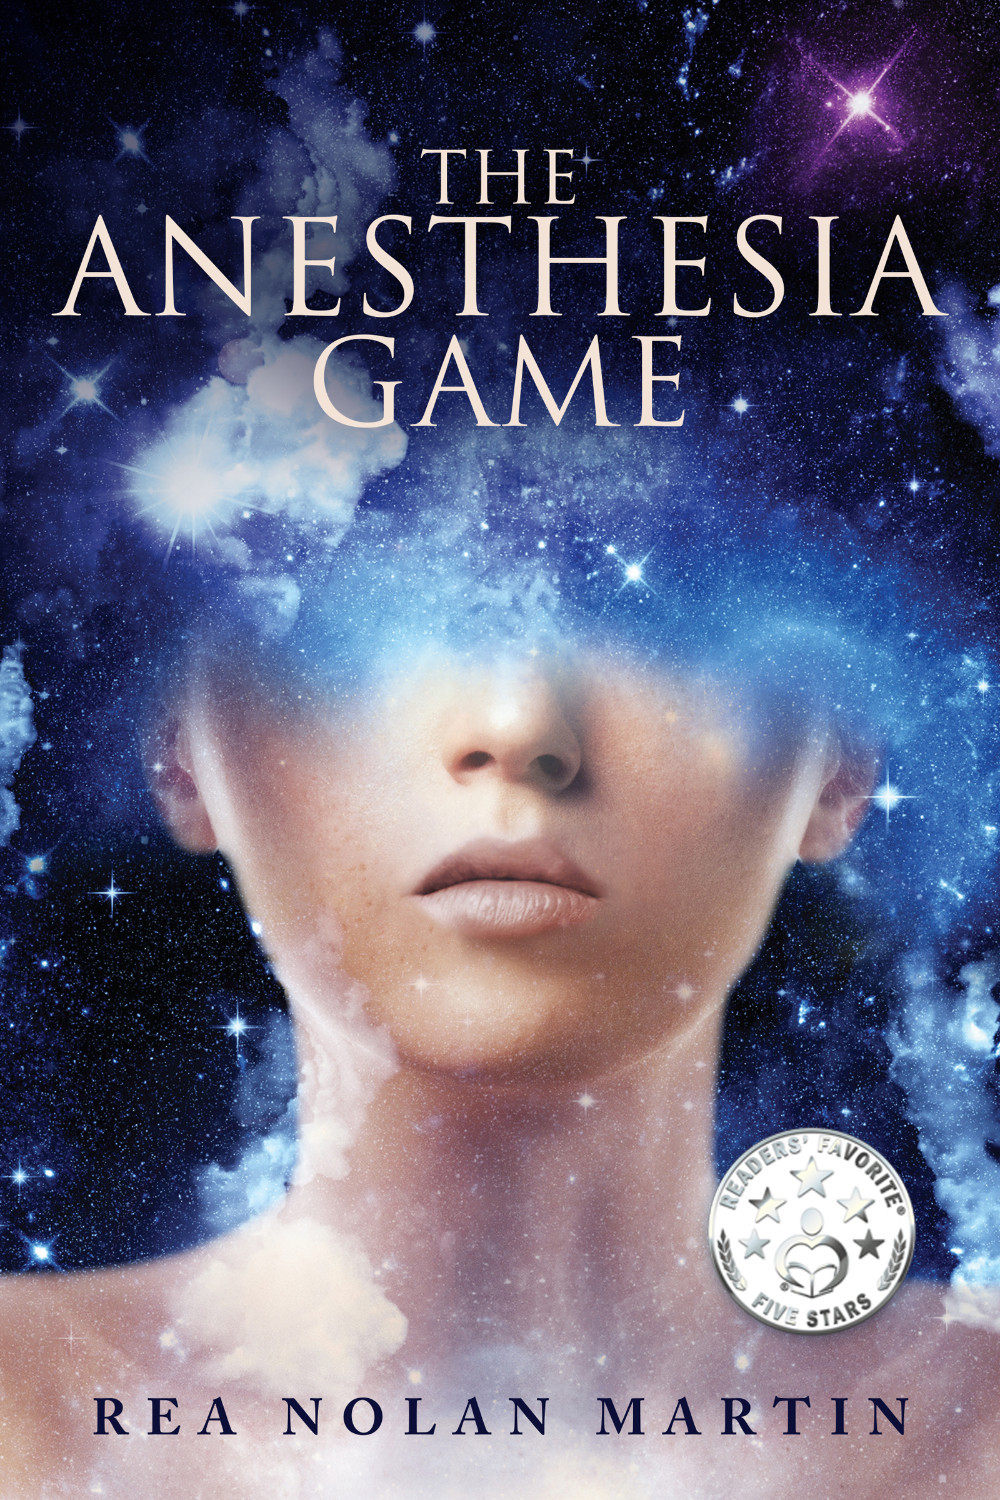 TheAnesthesiaGame_FINAL_1600px_557-125.jpg